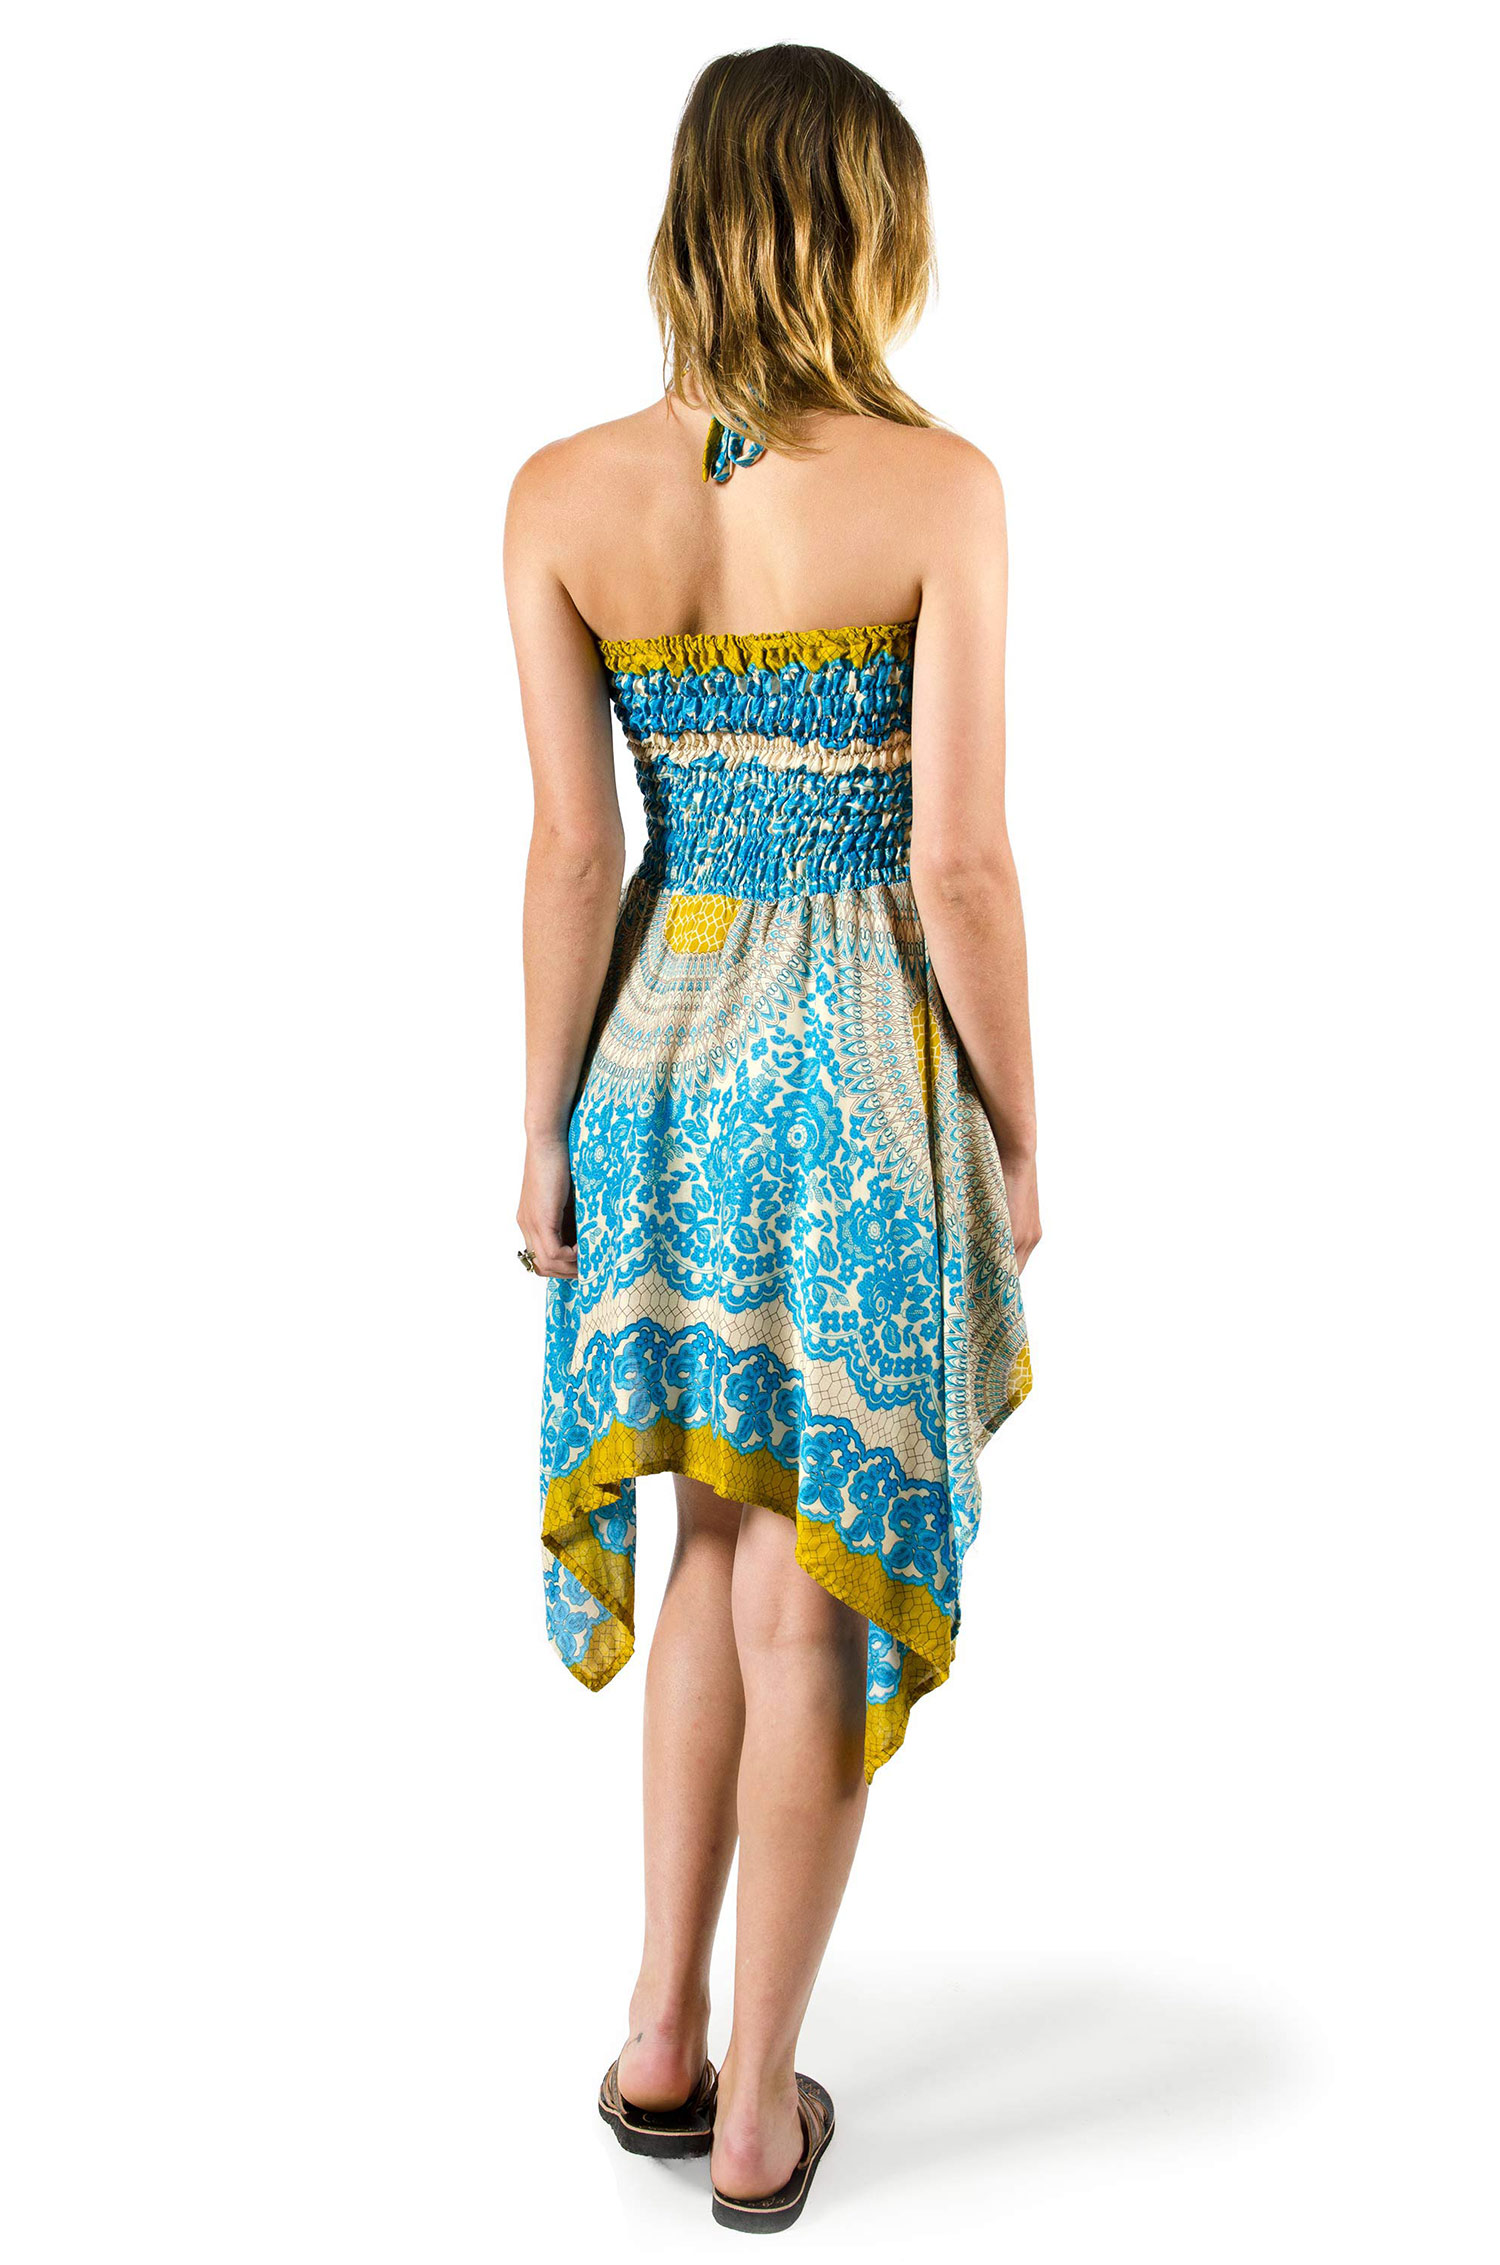 Convertible Print Fairy Dress / Skirt - Teal - 3135T